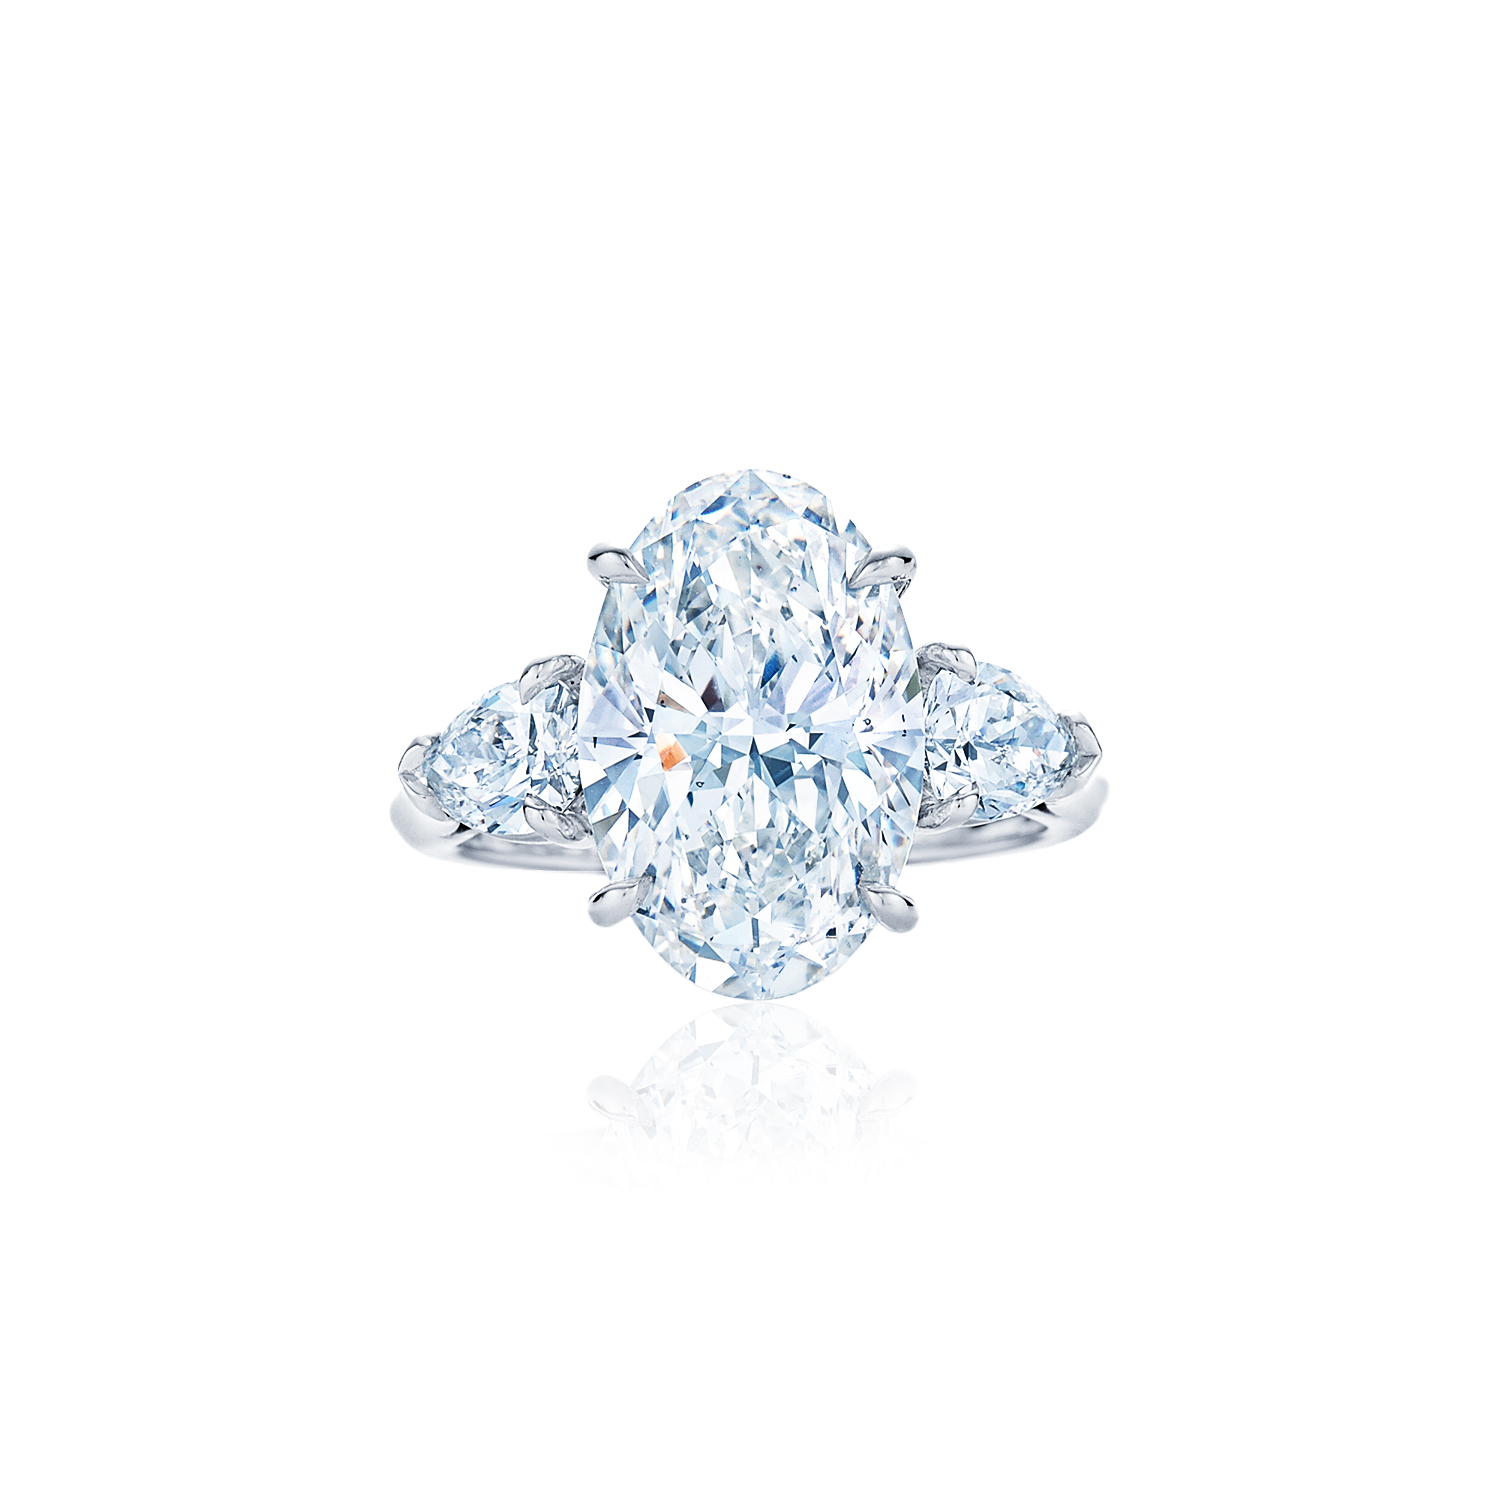 oval diamond ring with pear side stones set in platinum